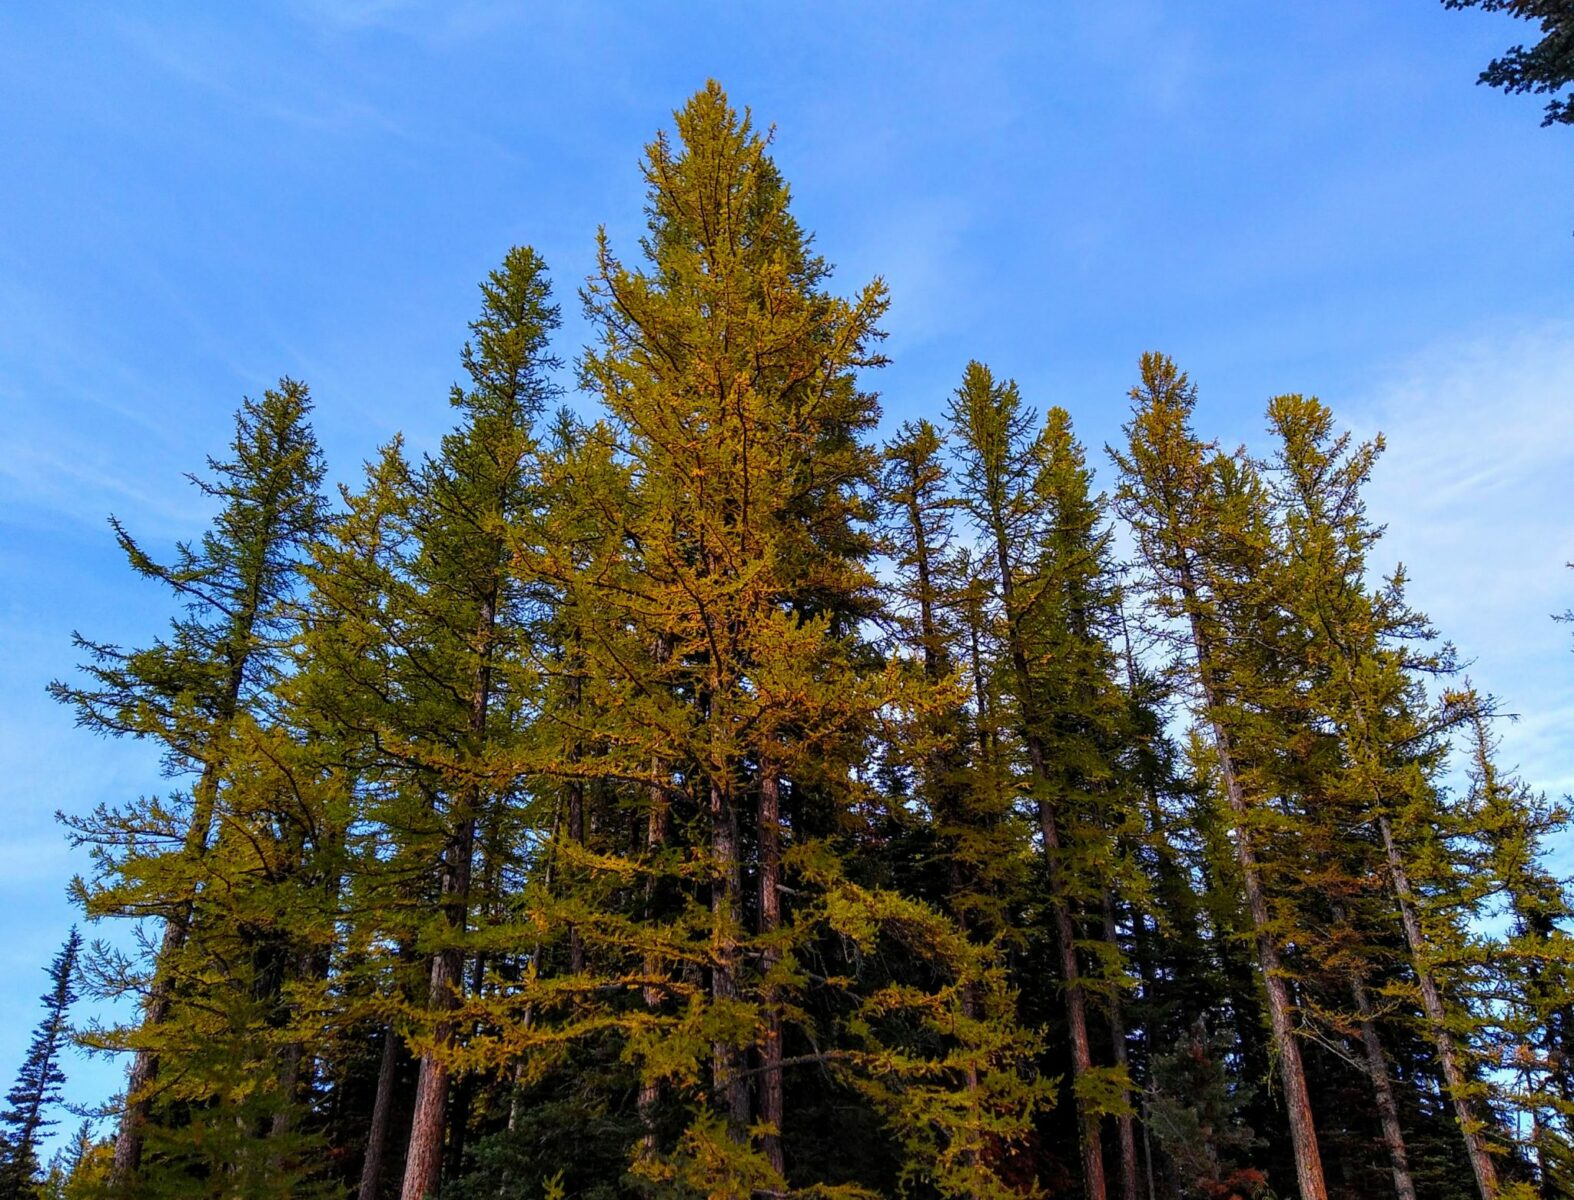 Golden larch trees against a blue sky on the Lake Clara Trail